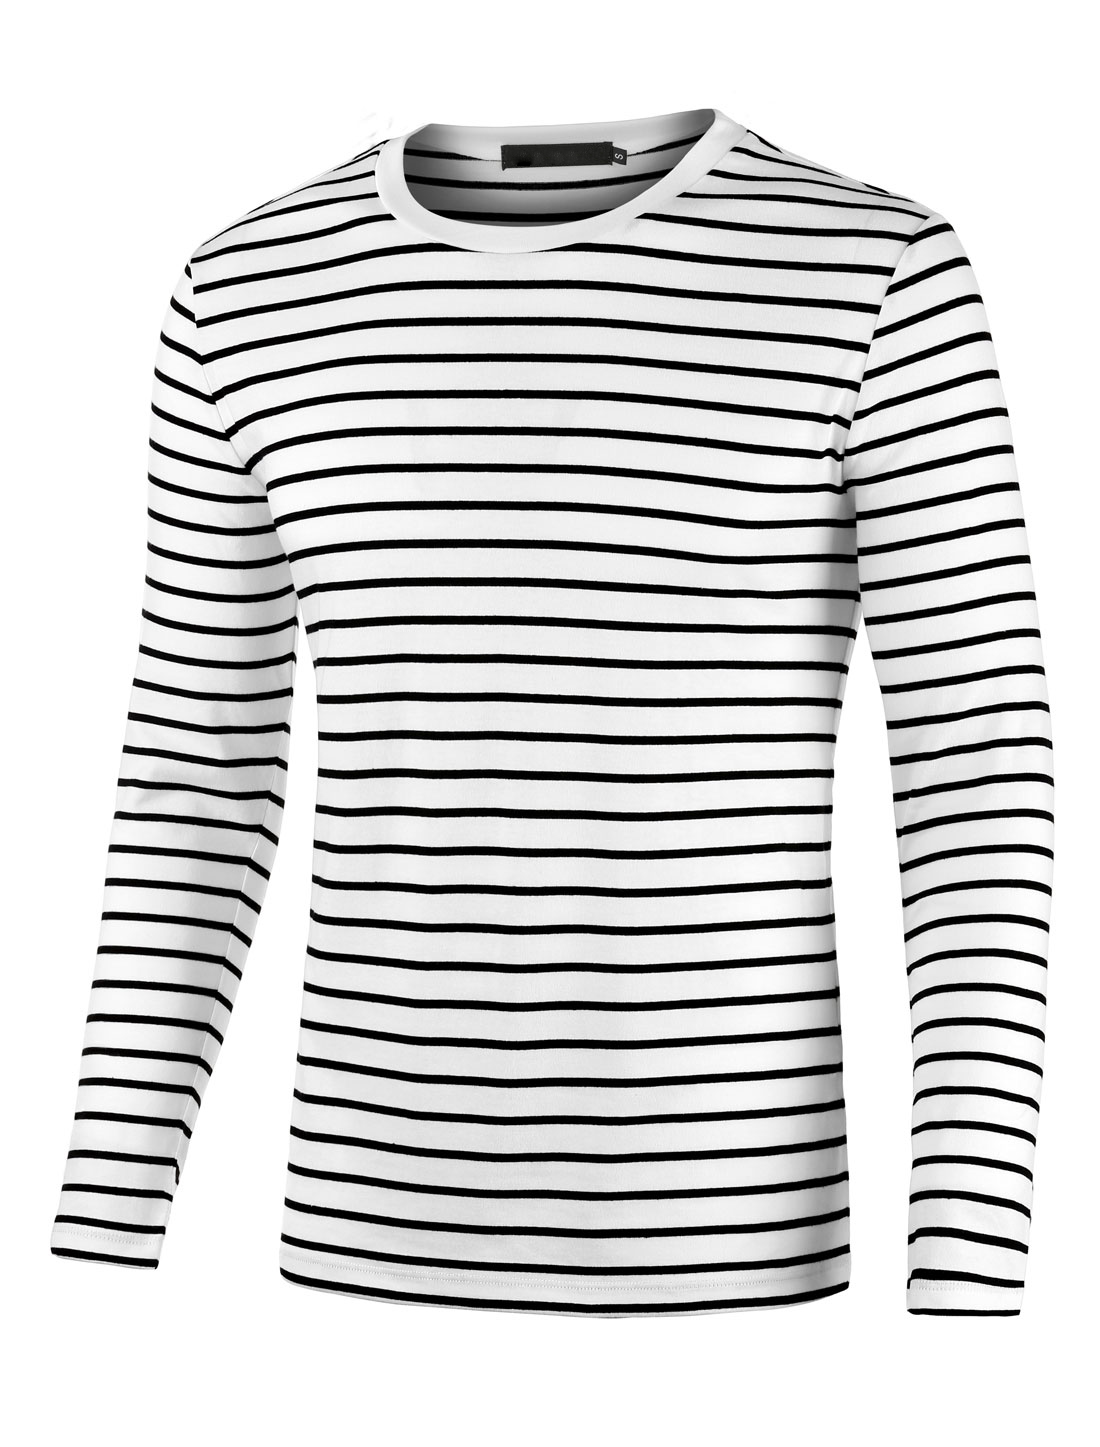 Men Crew Neck Long Sleeves Striped T-shirt Black White S